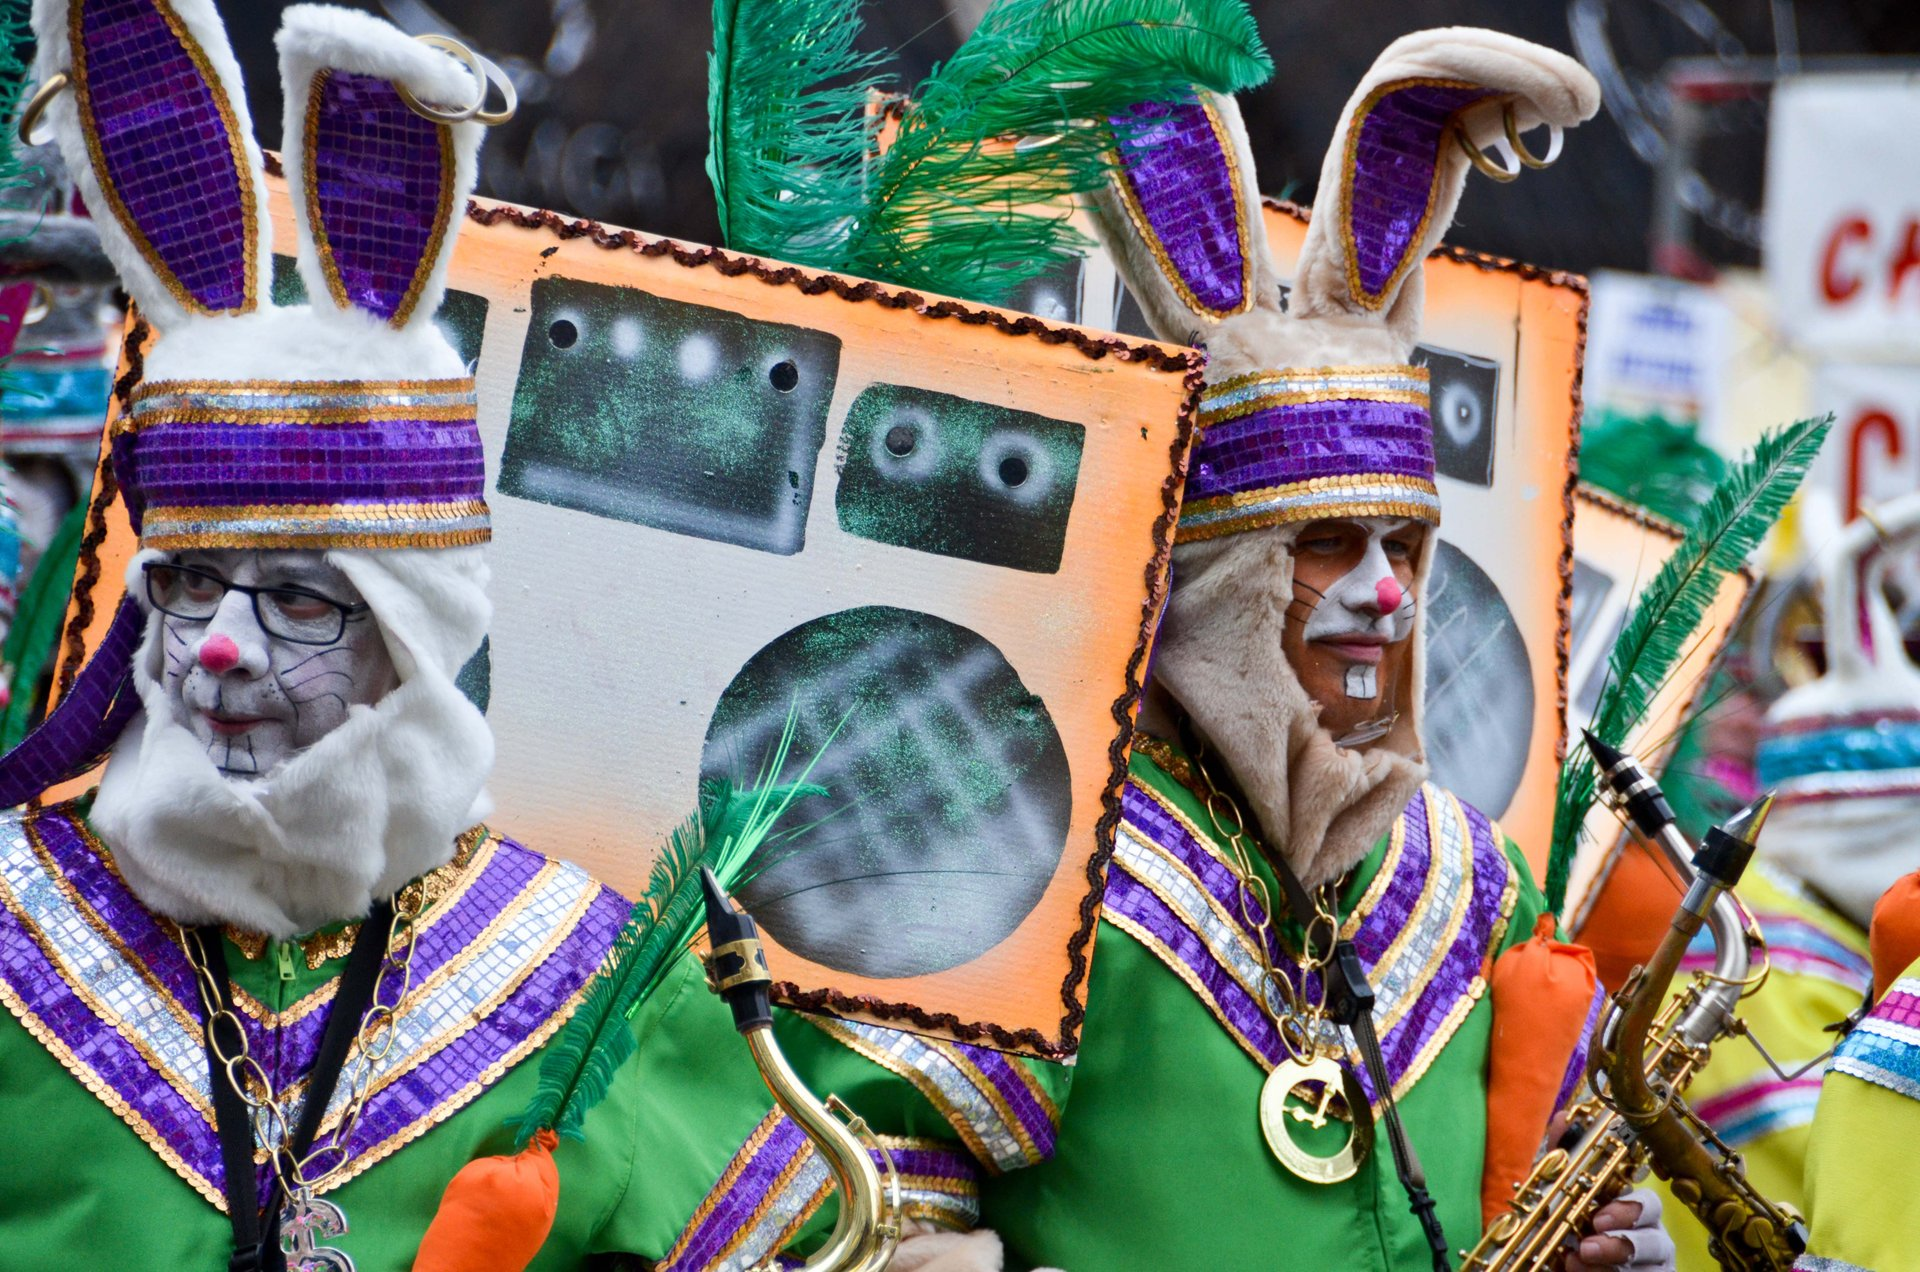 String Band Mummers at the Philadelphia Mummers Parade 2020